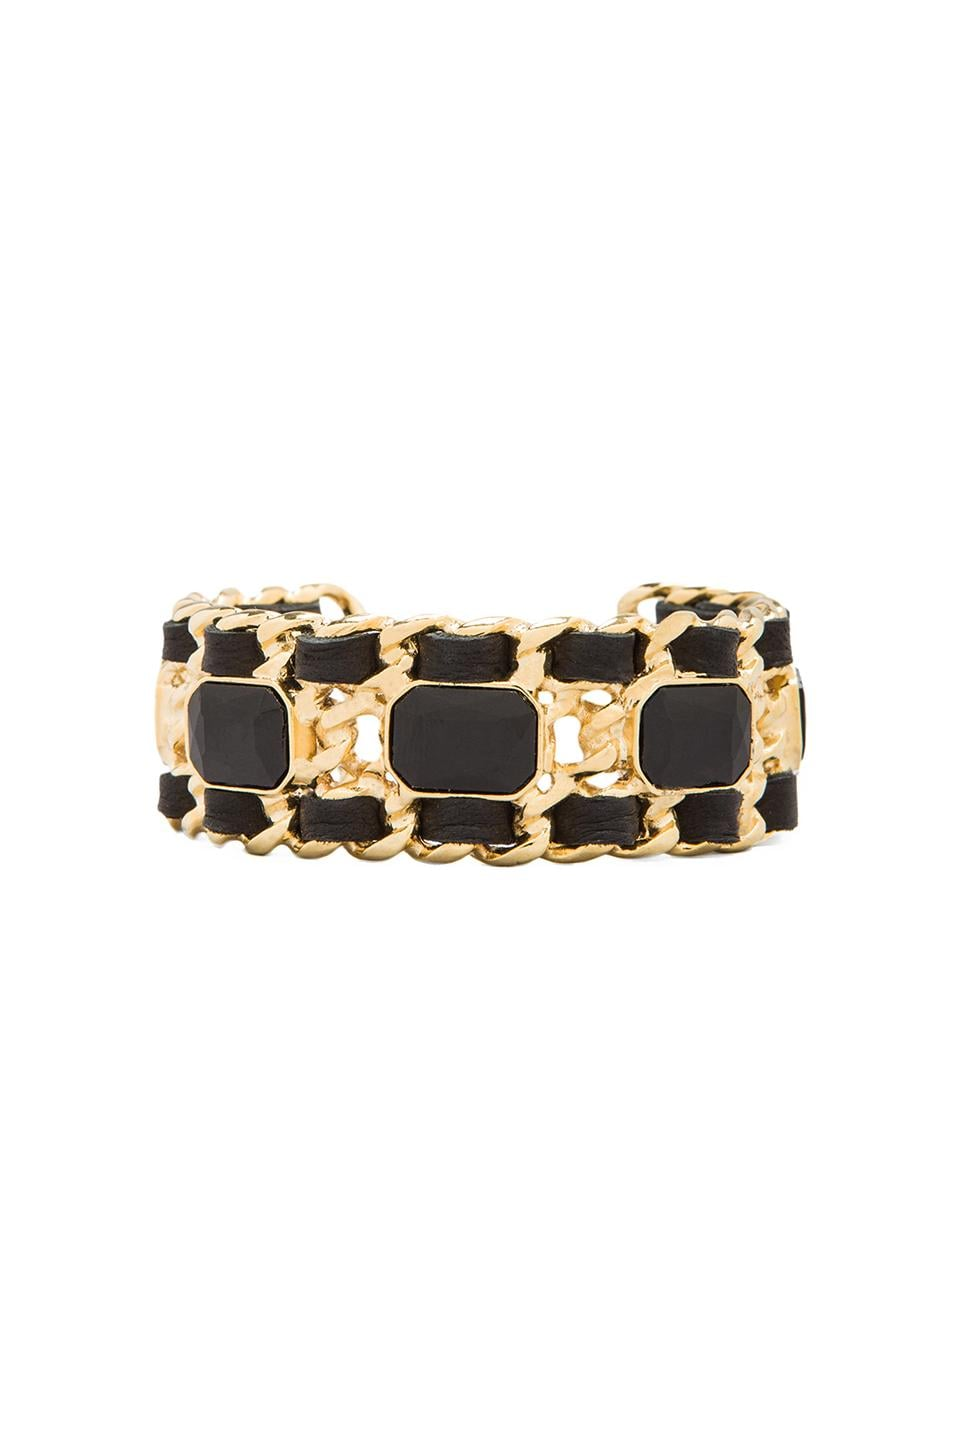 Ettika x REVOLVE Crystal Chain Cuff in Black/Gold